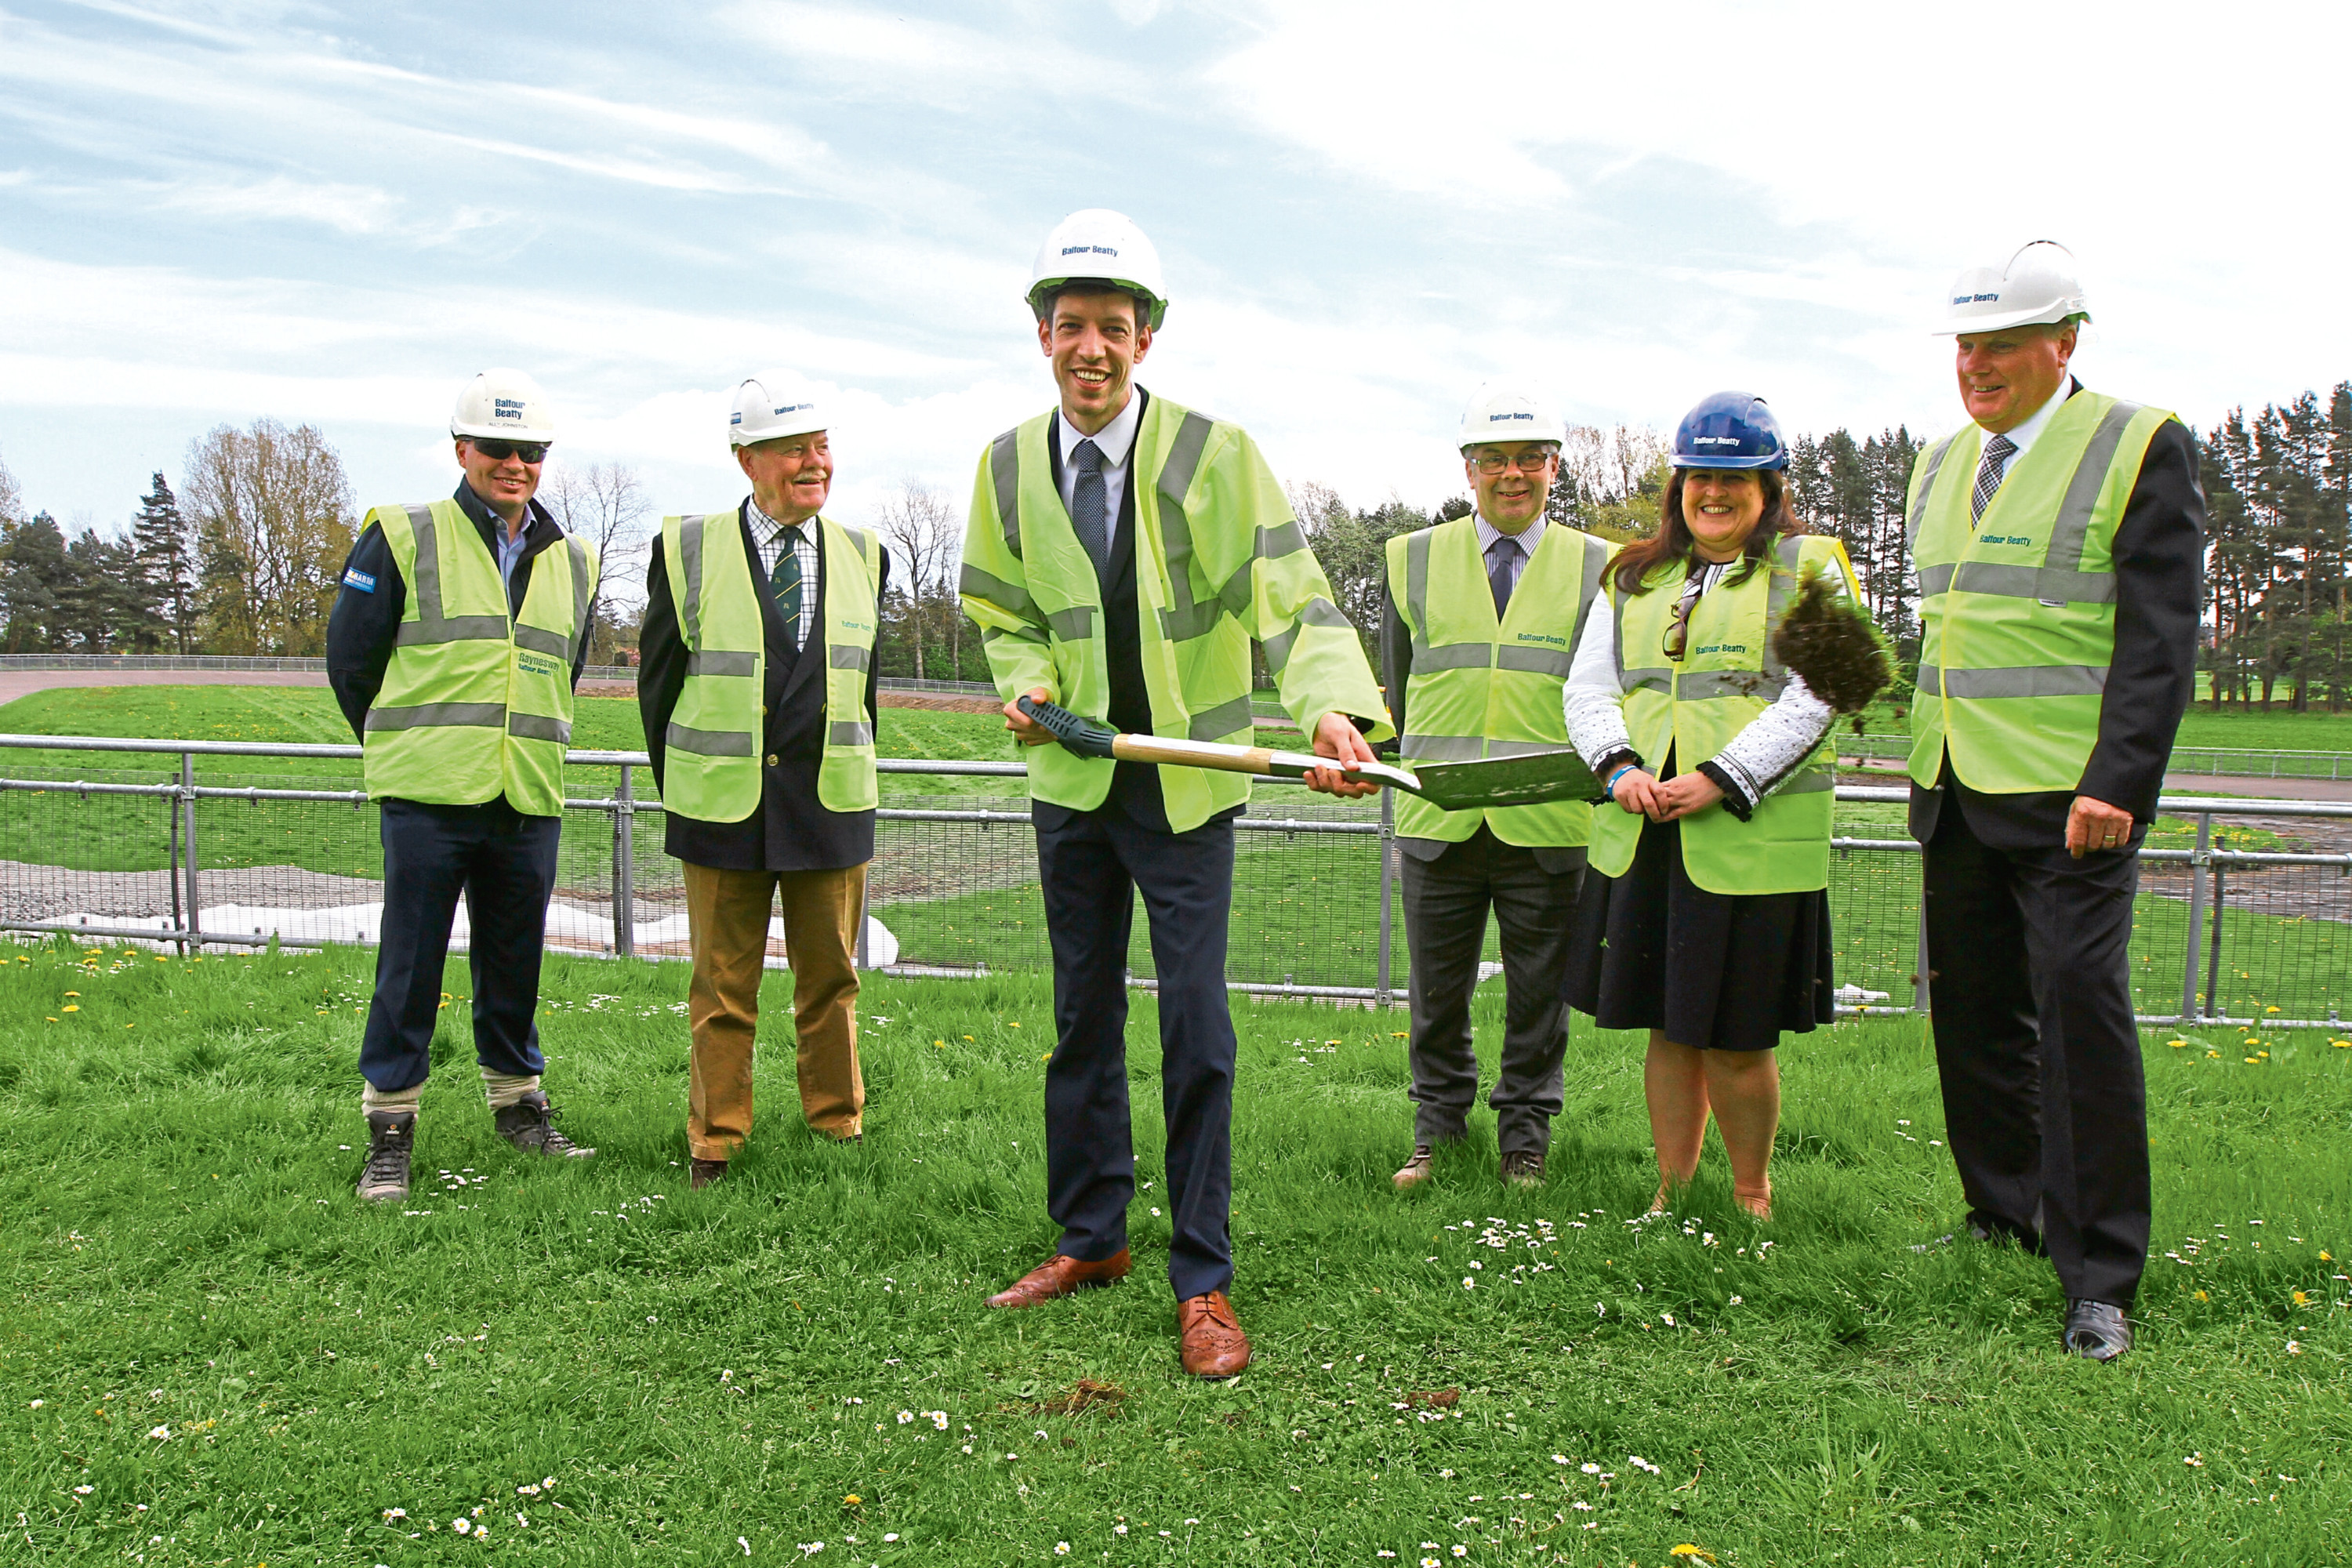 John Alexander and city development convener Councillor Lynne Short with representatives of contractor Balfour Beatty and Leisure and Culture Dundee